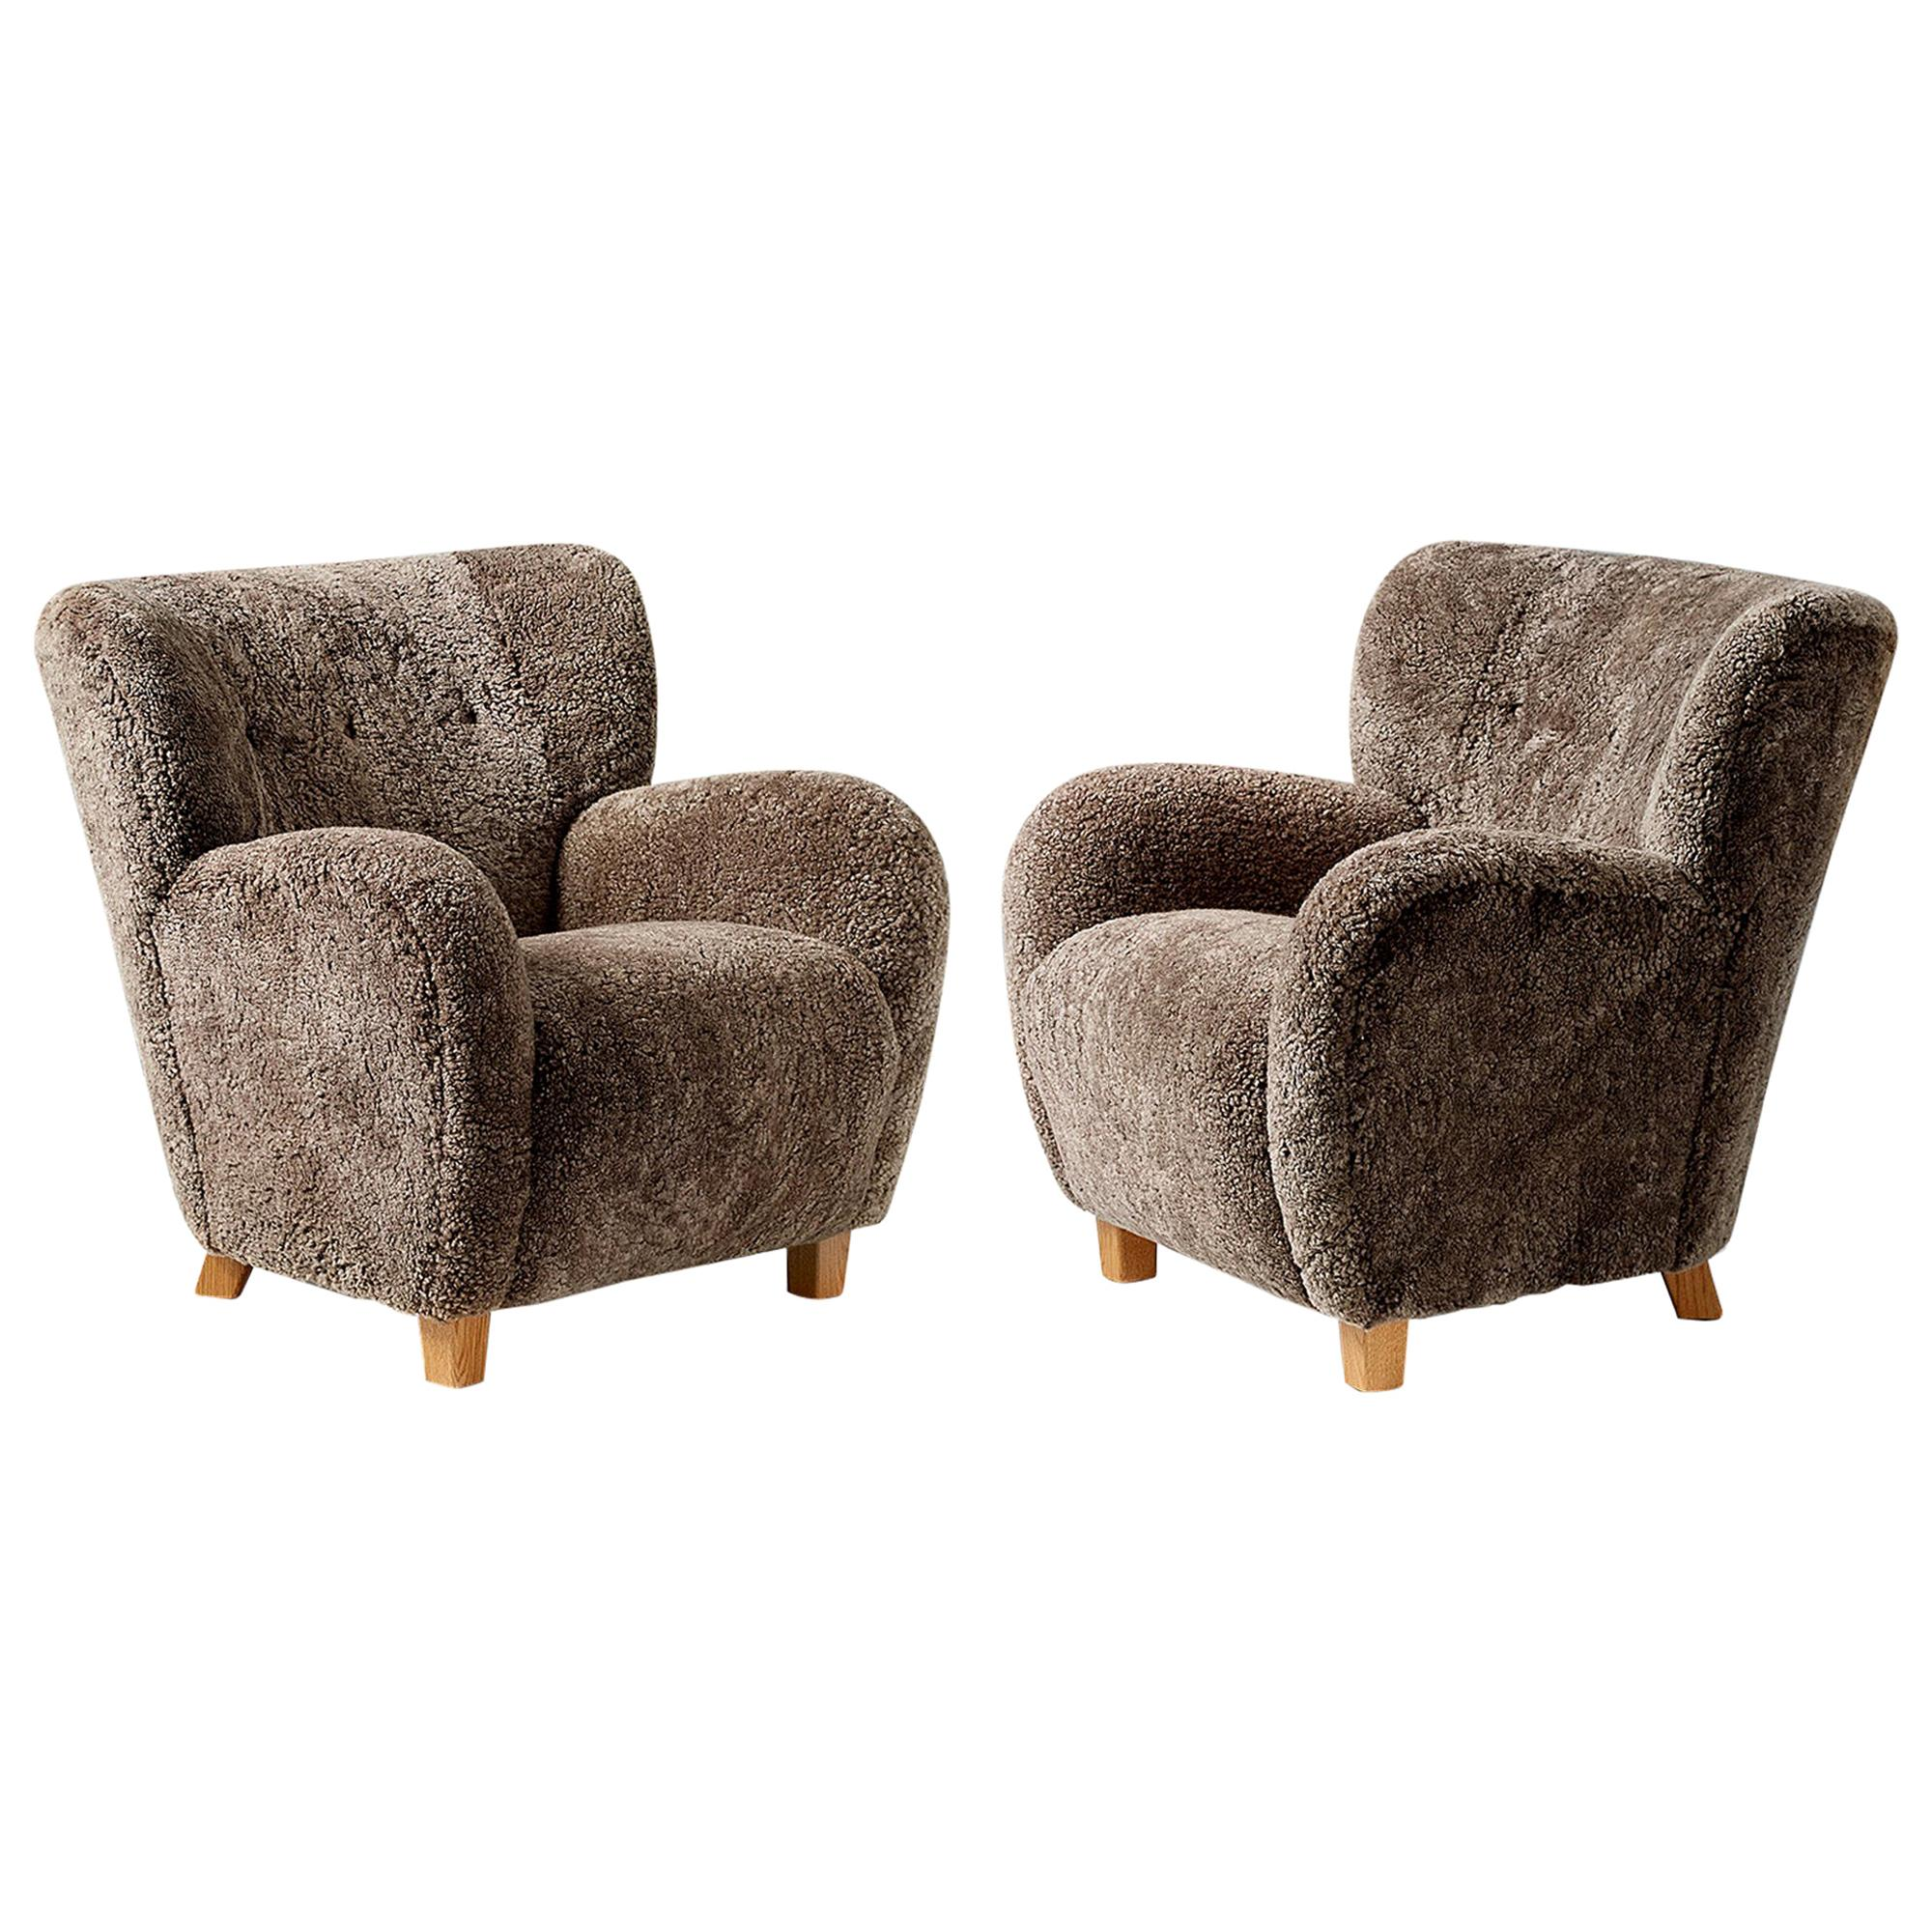 Custom Made Karu Sheepskin Lounge Chairs